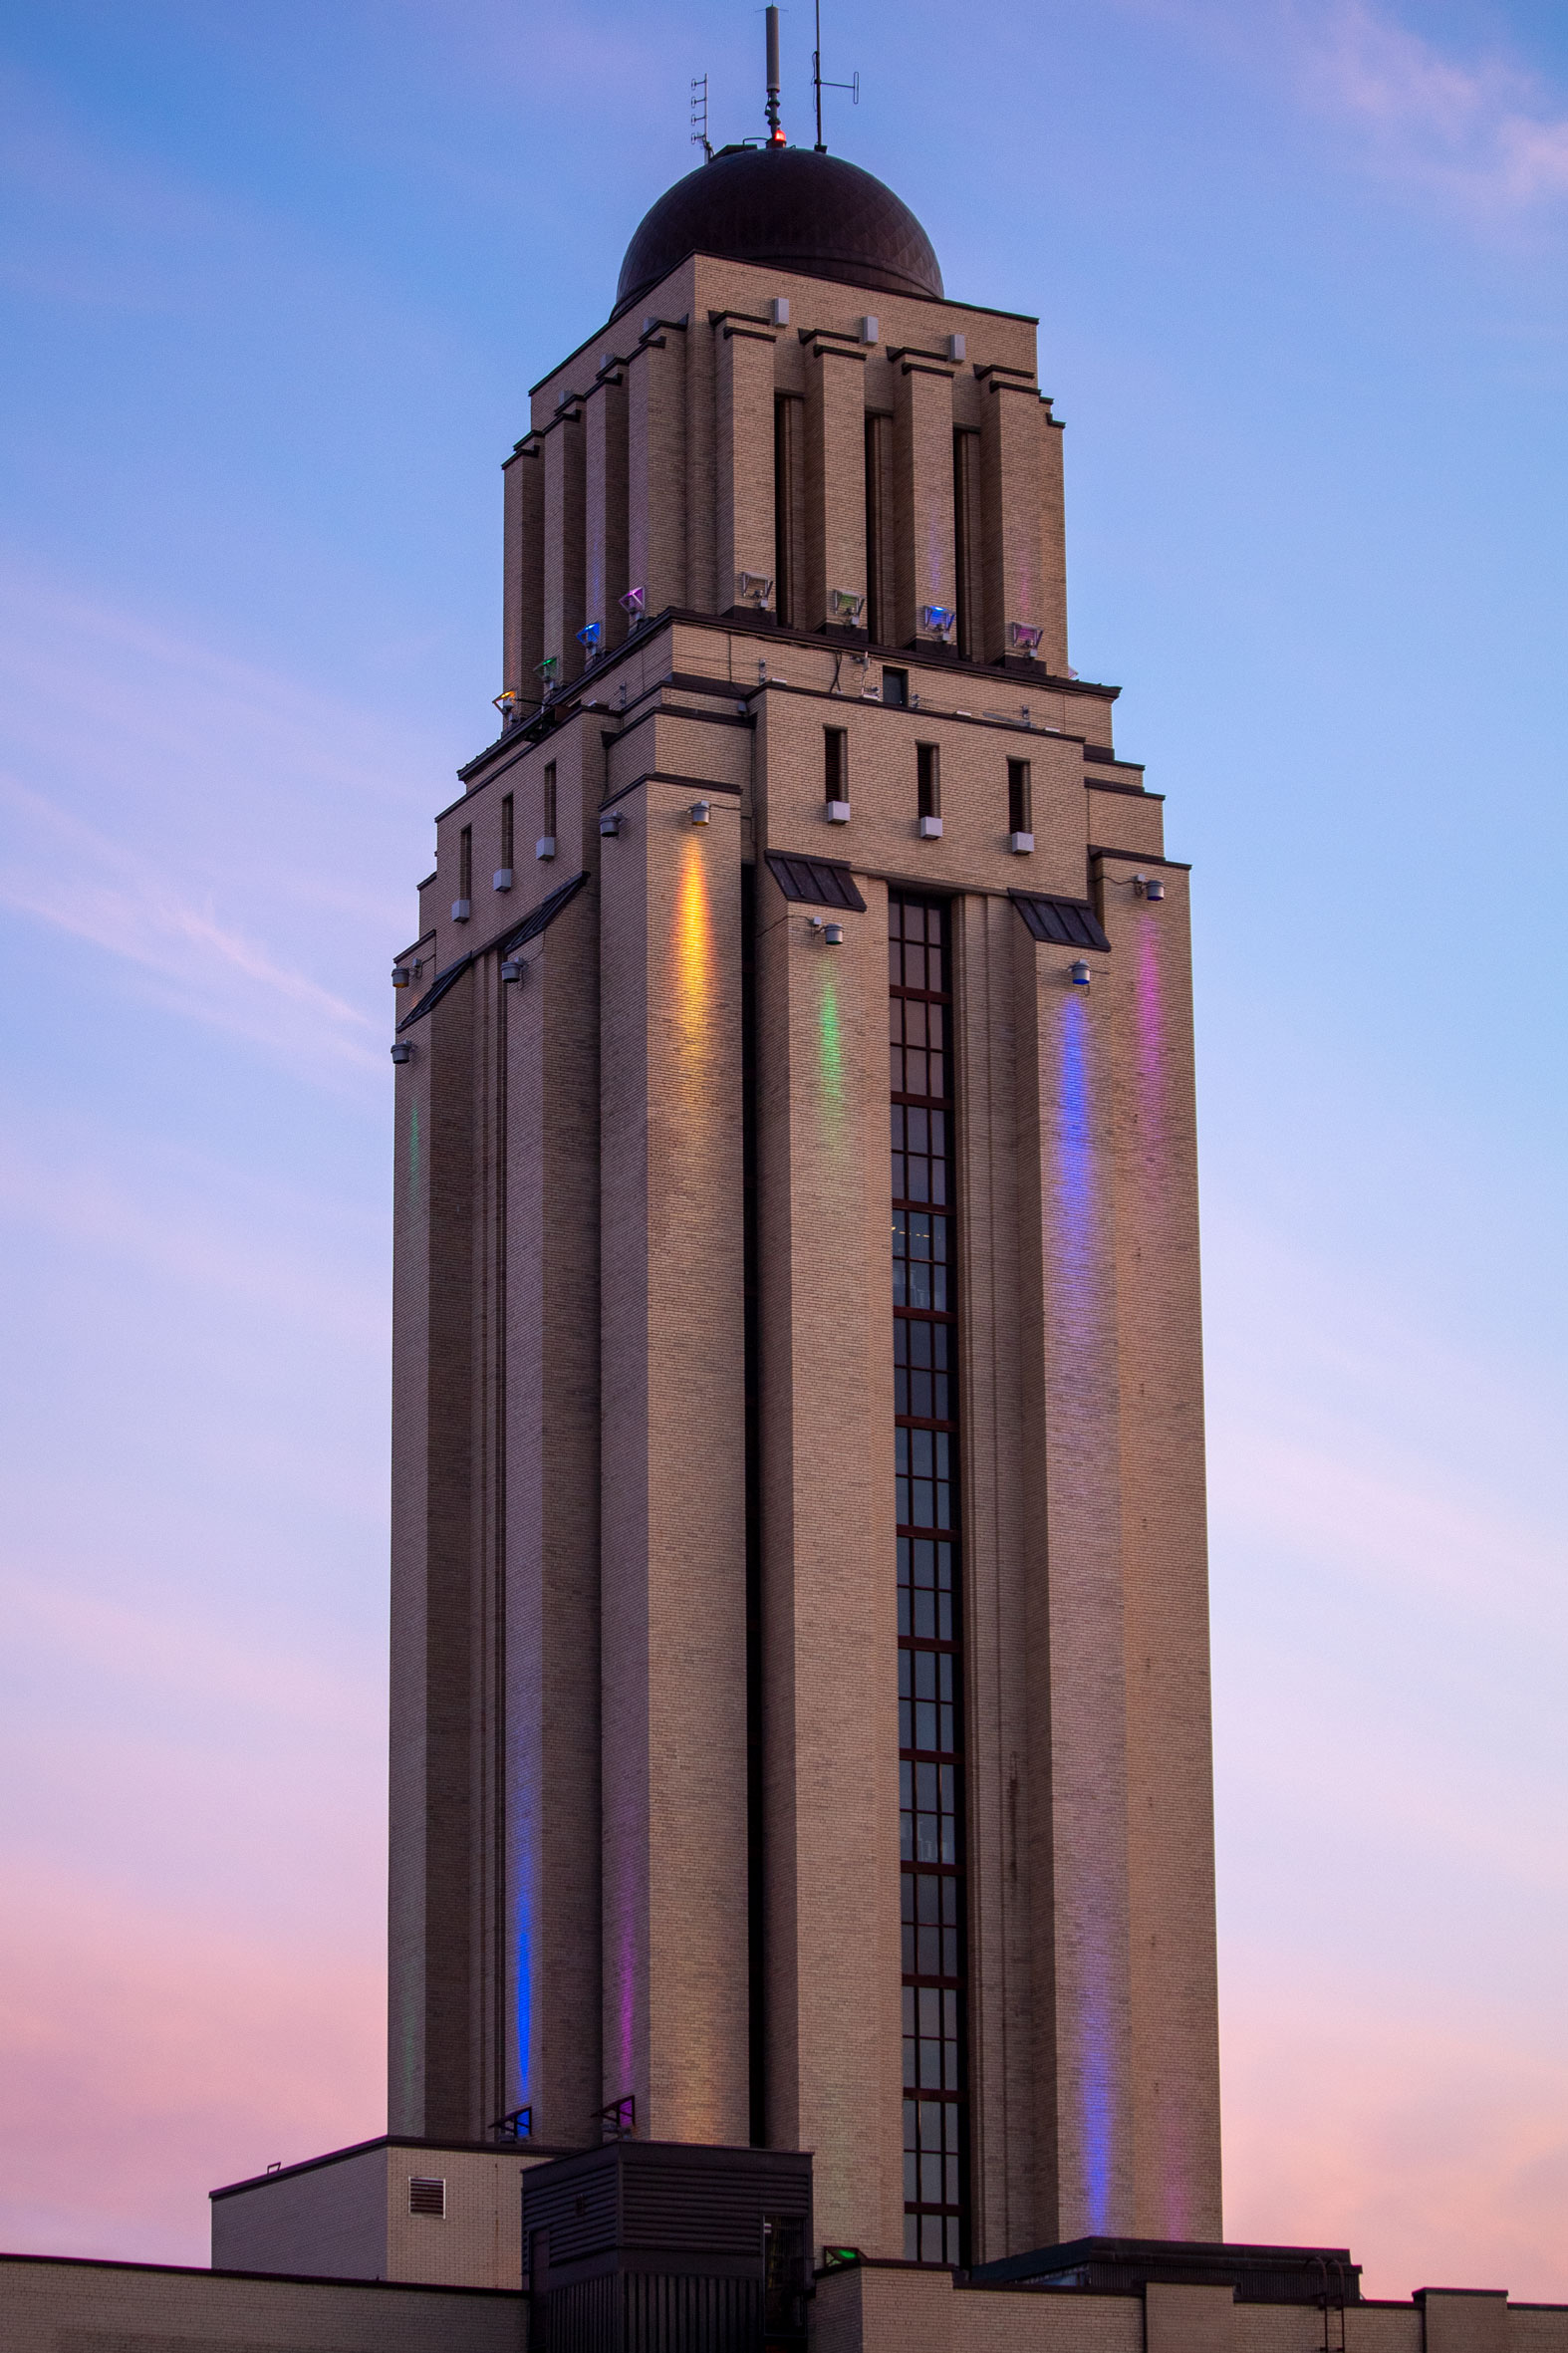 Tower against a sunset sky